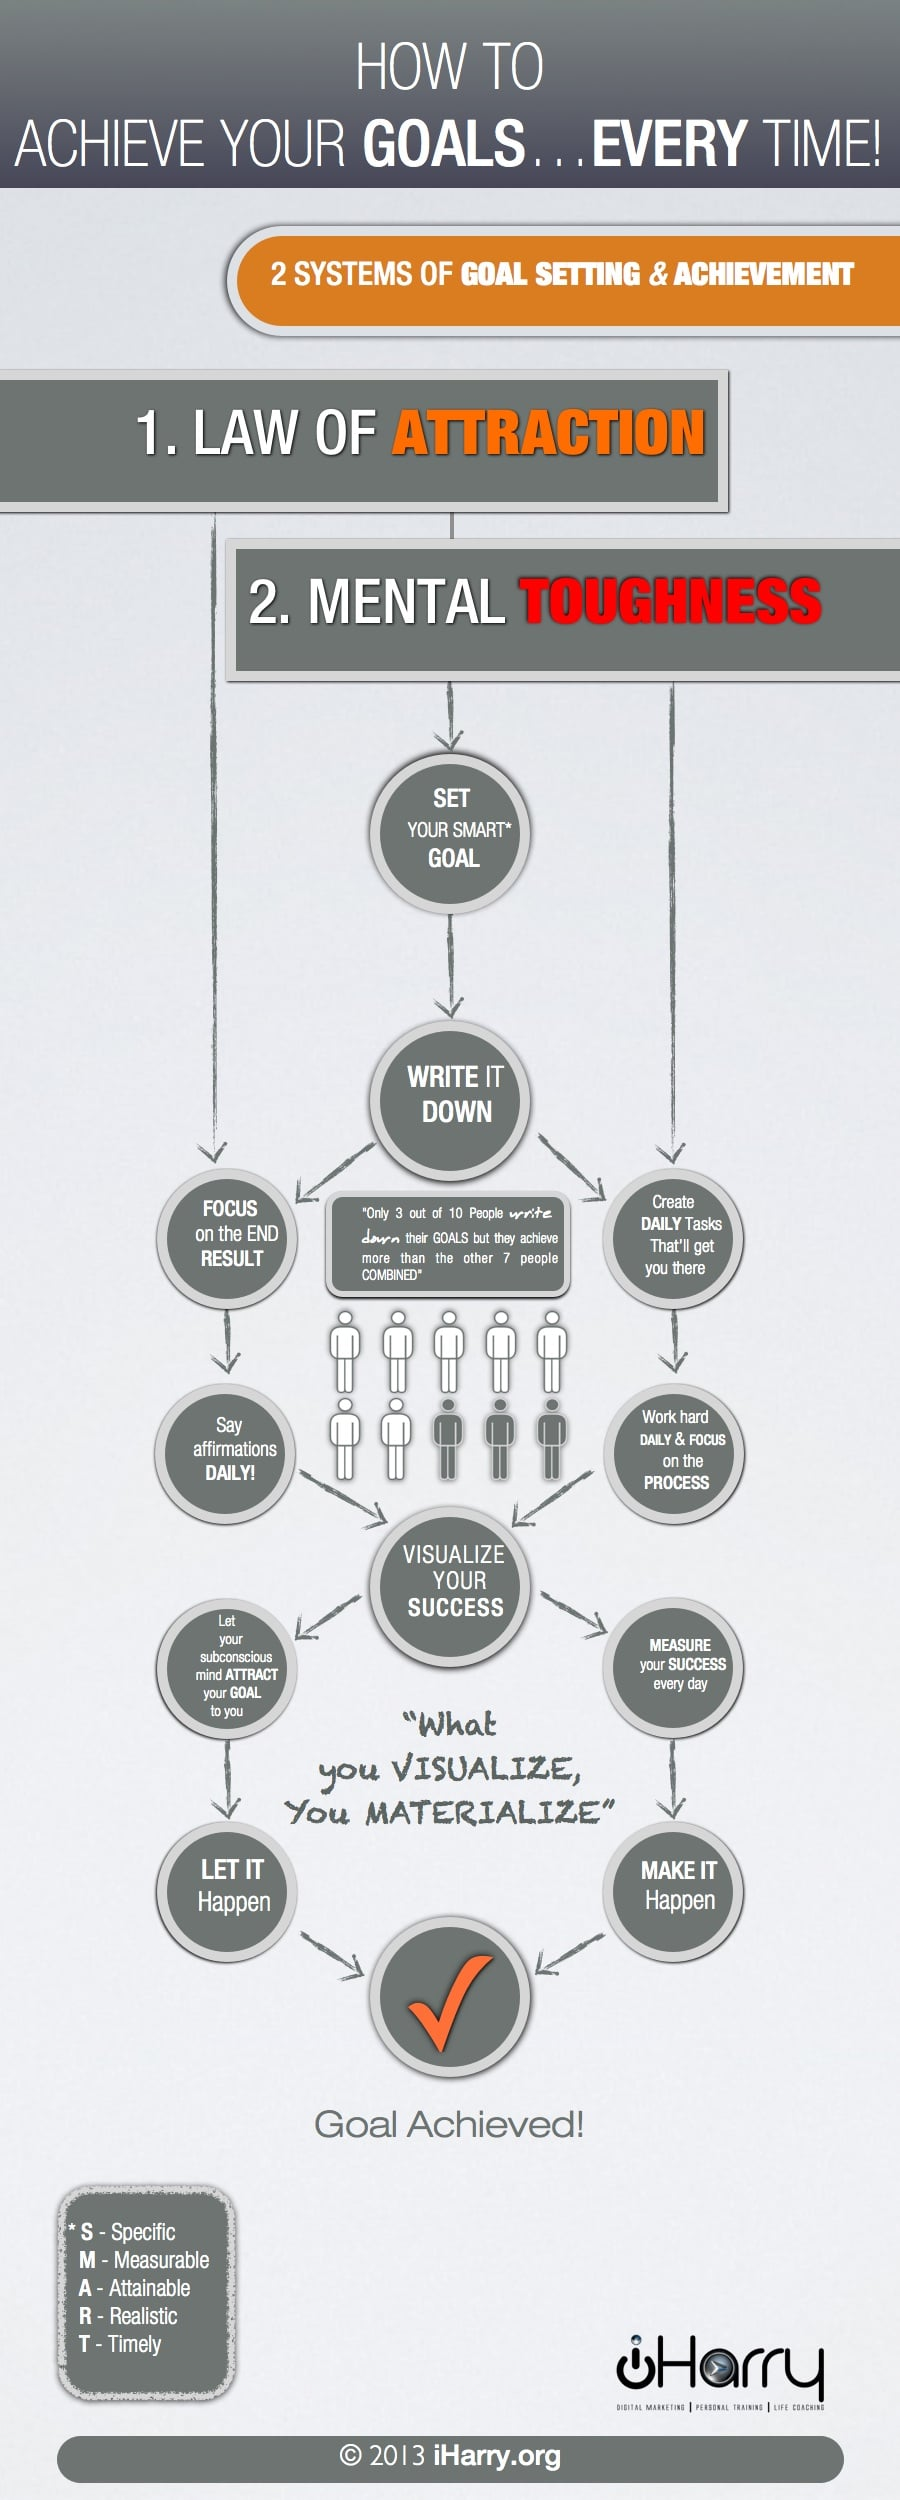 How To Set & Achieve Your Goals Every Time [Flowchart]